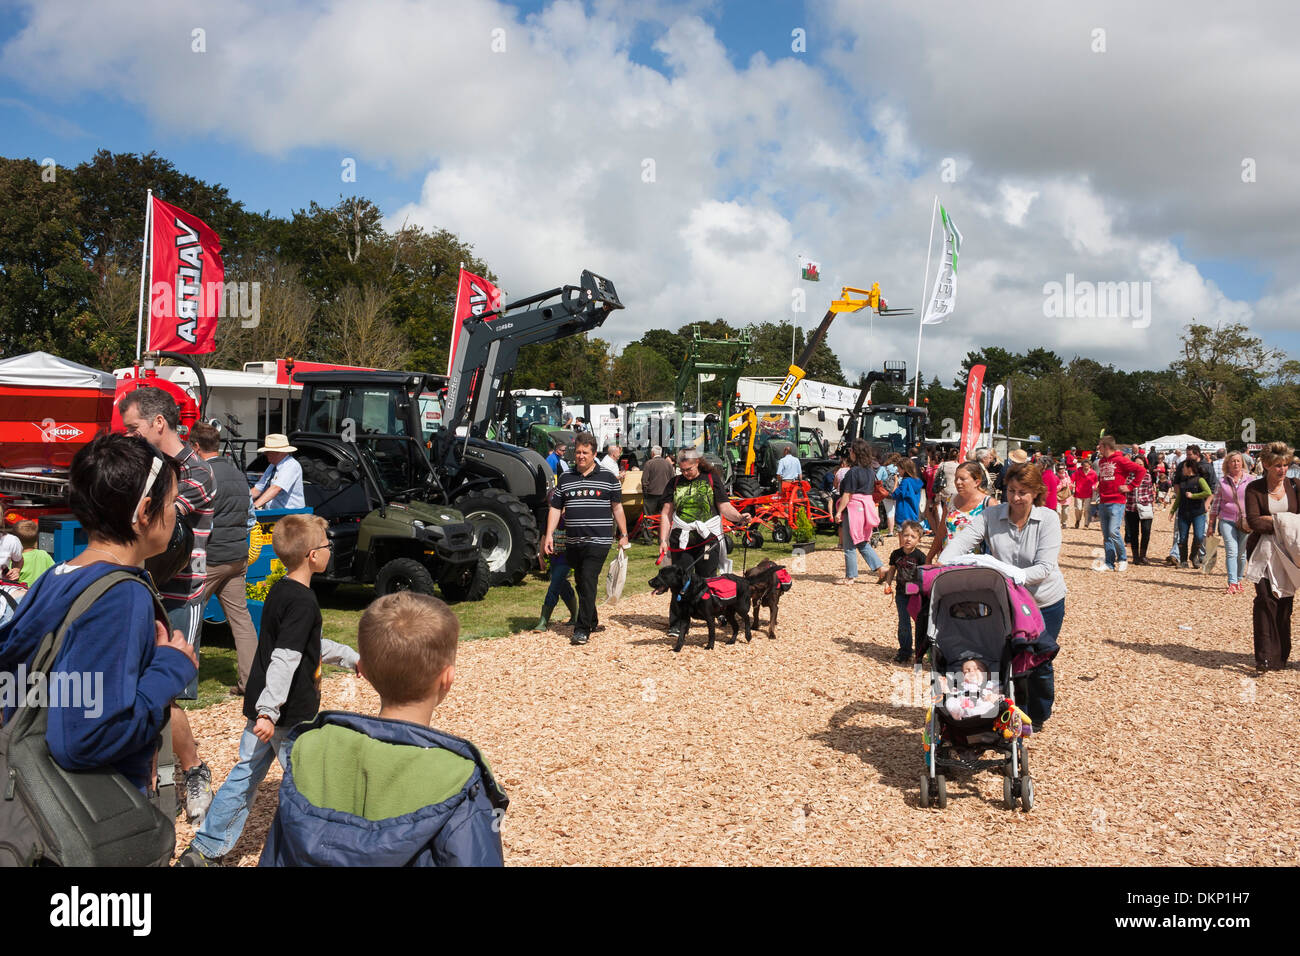 Crowds of people at agricultural showground - Stock Image